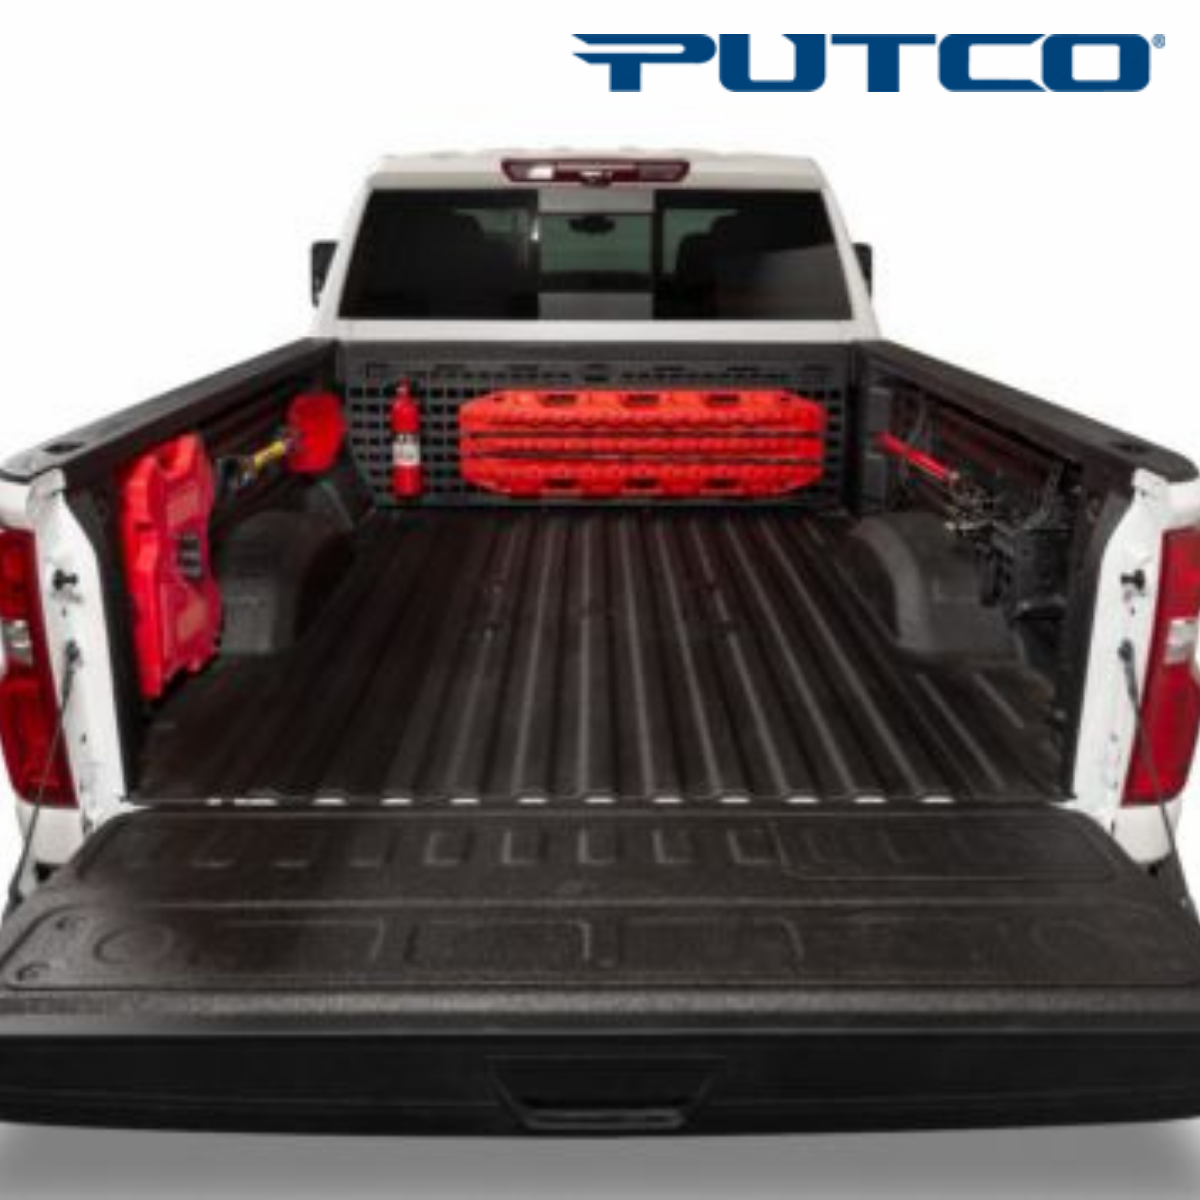 Stay organized for any job and get the proper cargo storage for your truck with Putco Molle Panels. Secure your cargo in the back of your truck bed with this one of a kind truck bed storage organizer system with custom fit designs engineered for every make and model. Compatible with bed covers and spray-in bed liners, Molle Panels holds your gear safely and securely inside the truck bed panel. This amazing cargo storage rack is perfect for latching down nearly anything you want to secure in place including MOLLE bags, trail gear, tools, high lift jacks, axes, shovels and more. It's perfect system for overlanding pickup trucks or work trucks to hang and organize gear, tools and more. Pay us a visit and we'll help you not only secure your cargo but keep it organized with this Putco product.